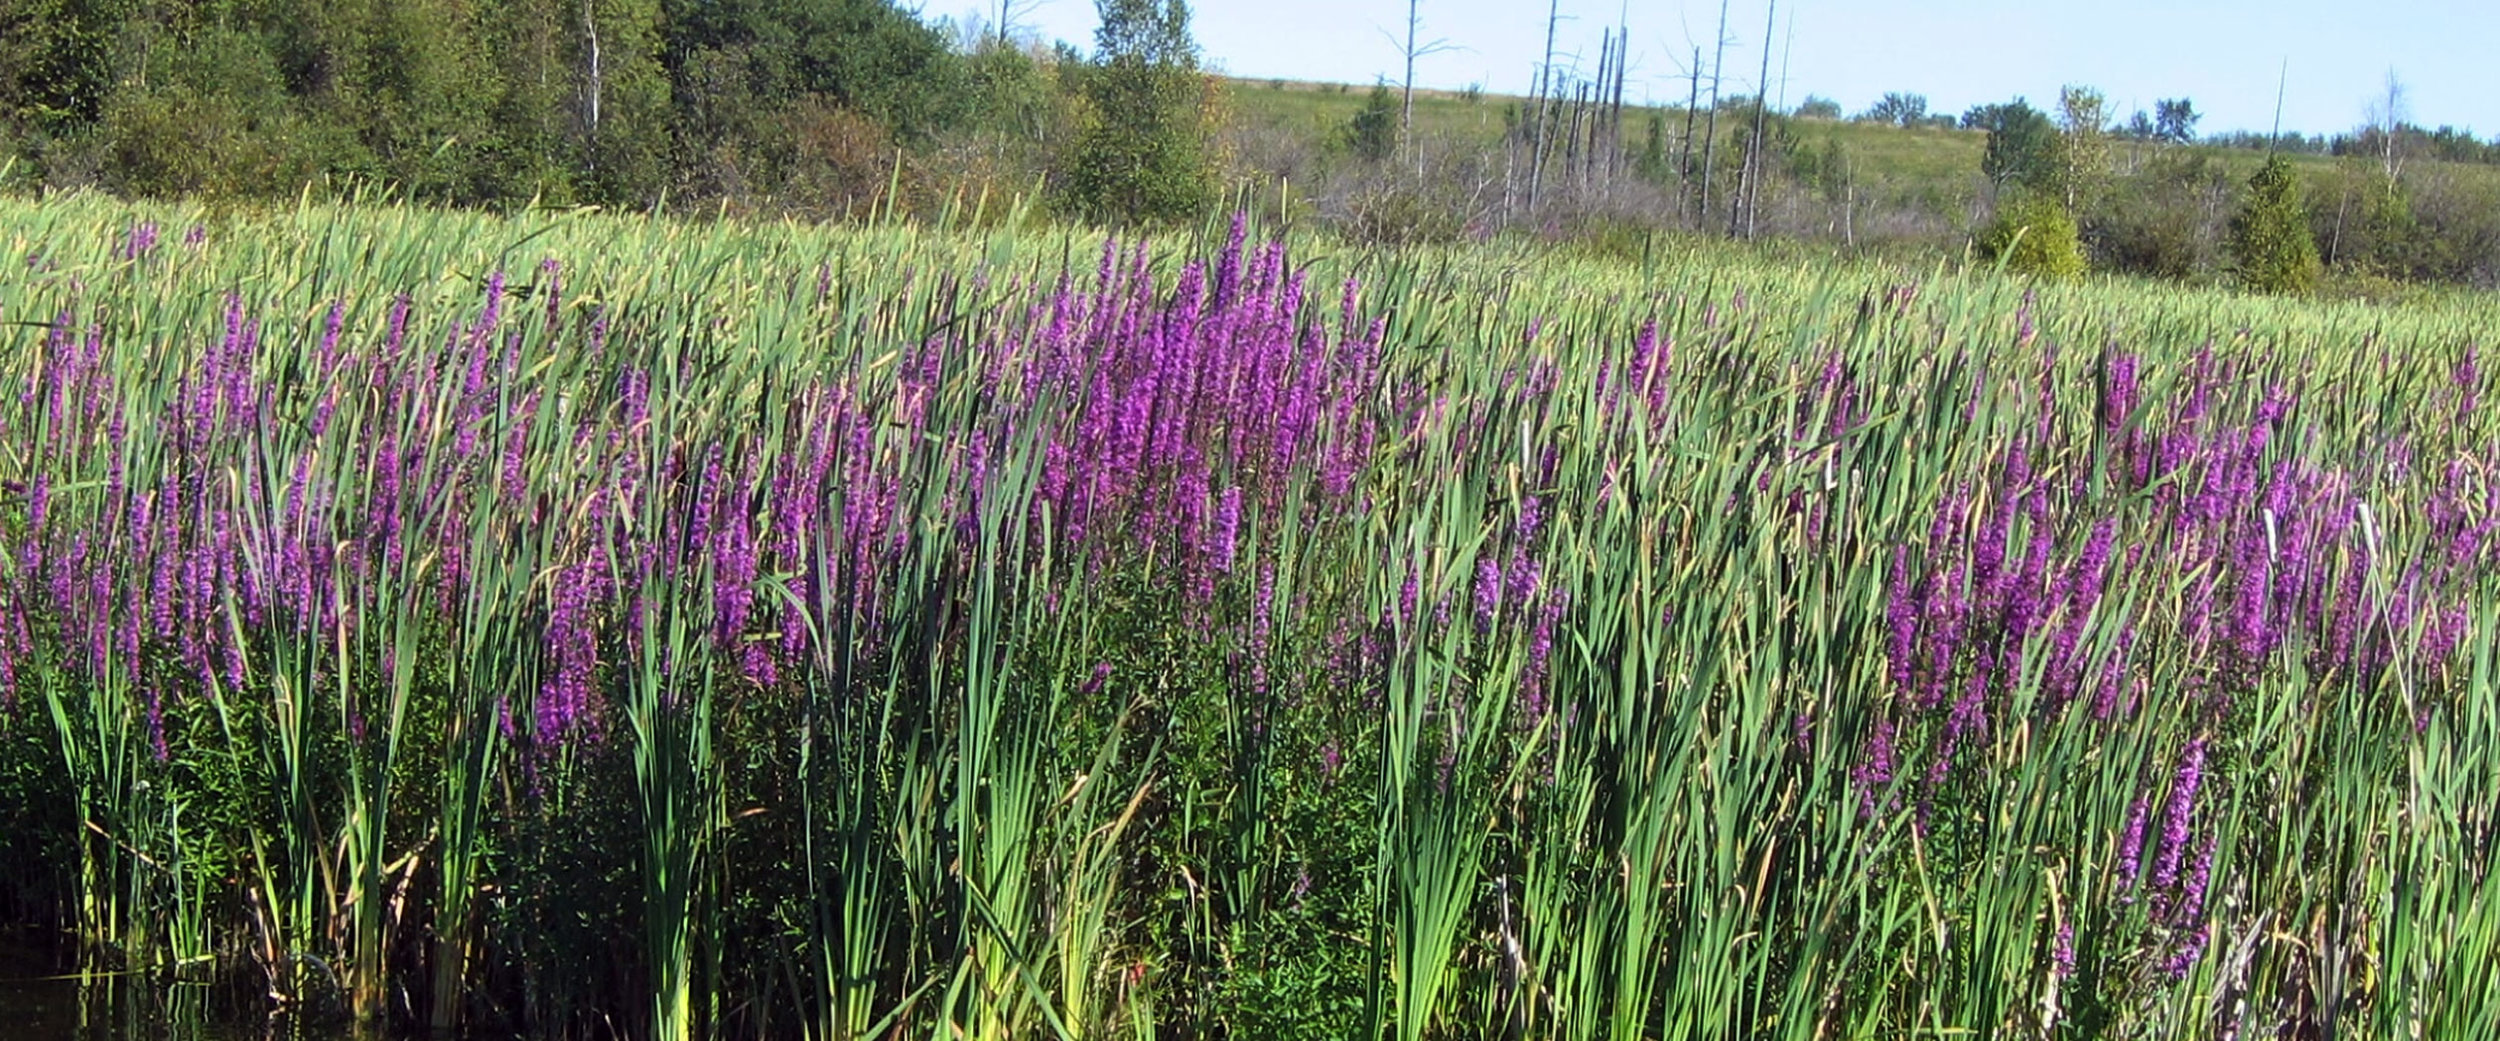 Purple Loosestrife used to be available at many garden centres but it quickly spread to our lakes and streams and is threatening fish and wildlife habitat by replacing native vegetation in Wabamun Lake.